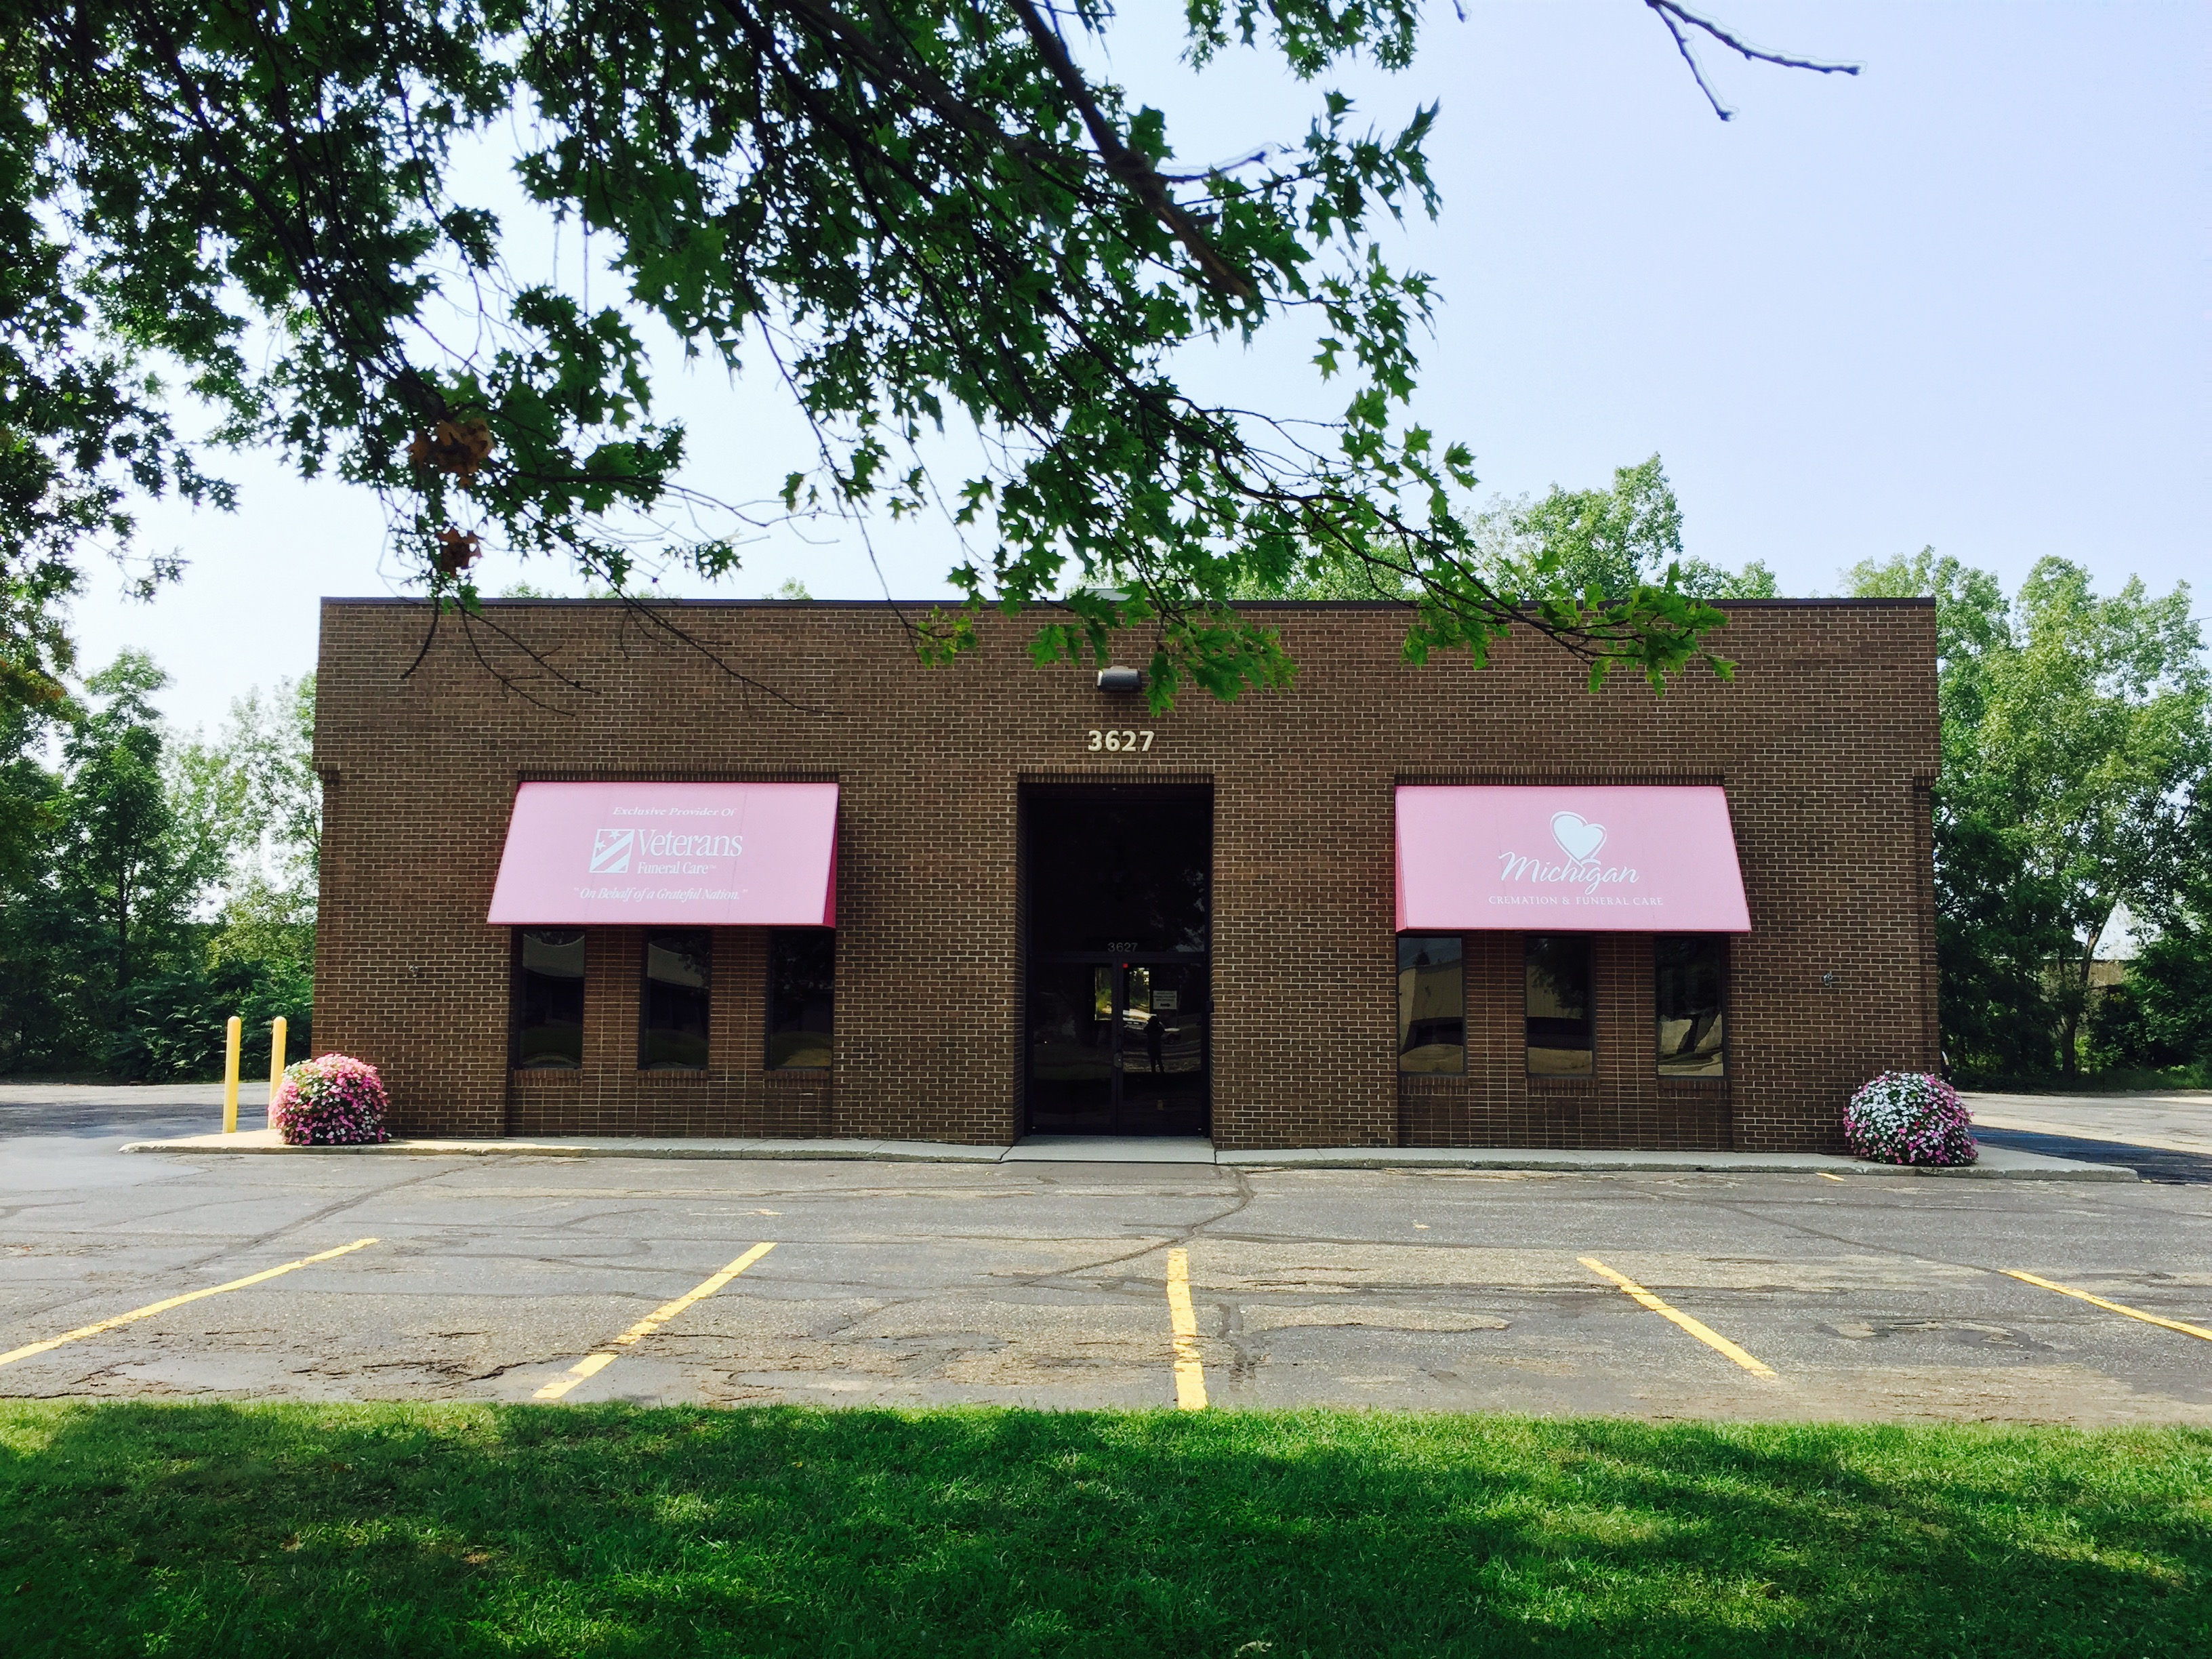 Michigan Cremation & Funeral Care building in Grand Rapids, MI